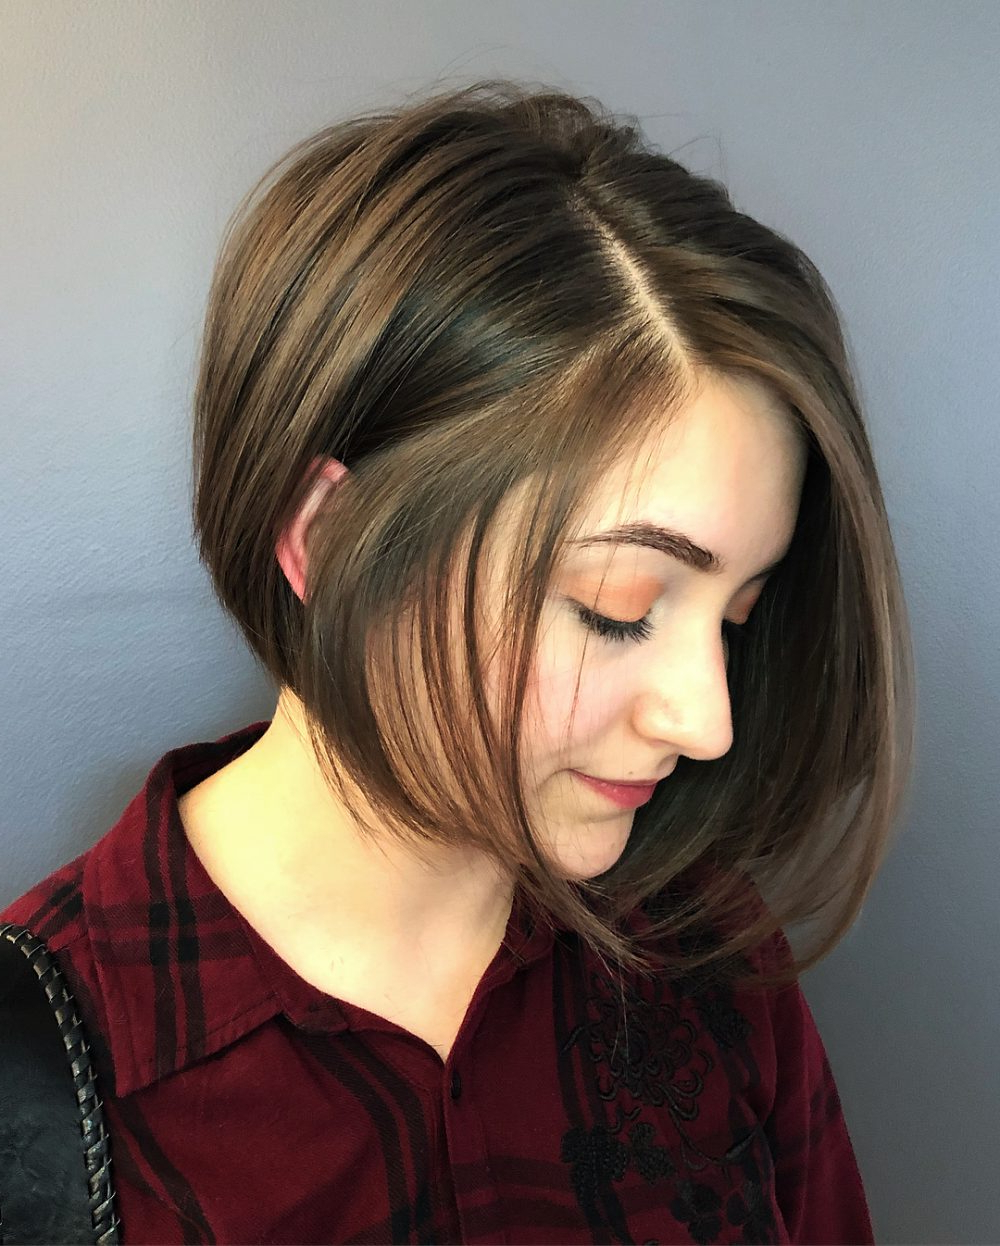 33 Flattering Short Hairstyles For Round Faces In 2018 with regard to Medium Short Haircuts For Round Faces